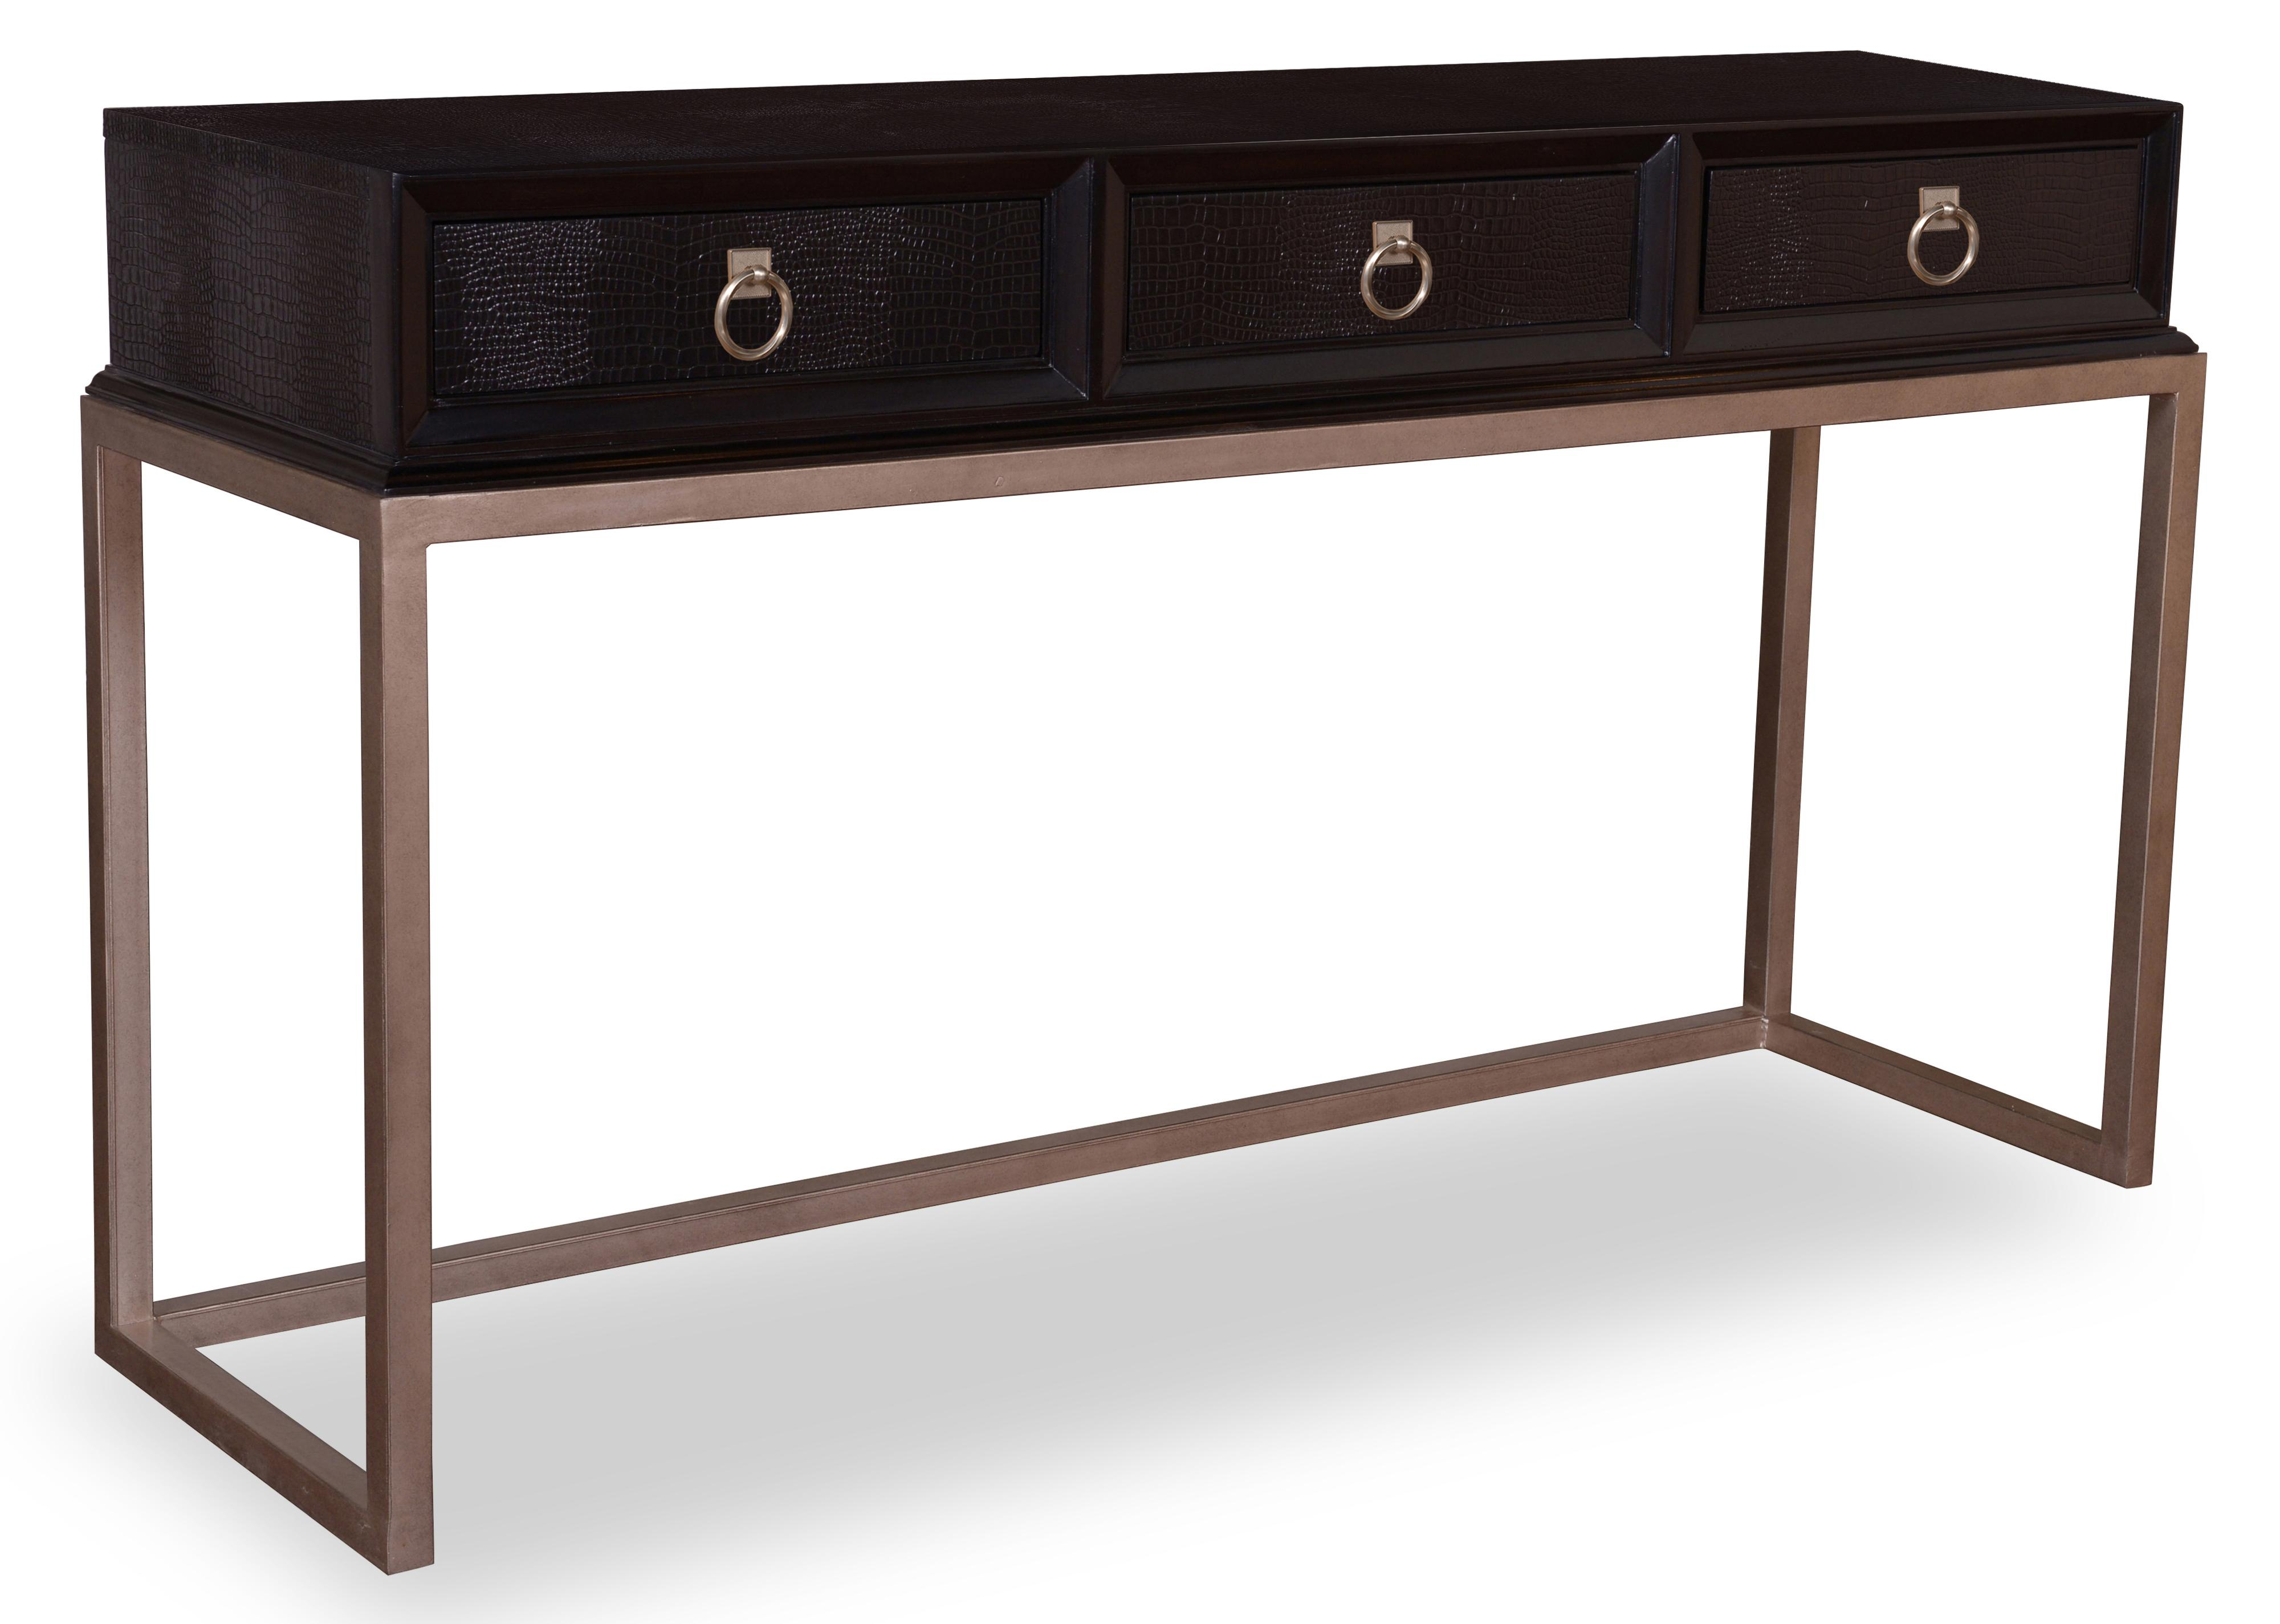 Table Consoles A R T Furniture Inc Cosmopolitan Console Table With Faux